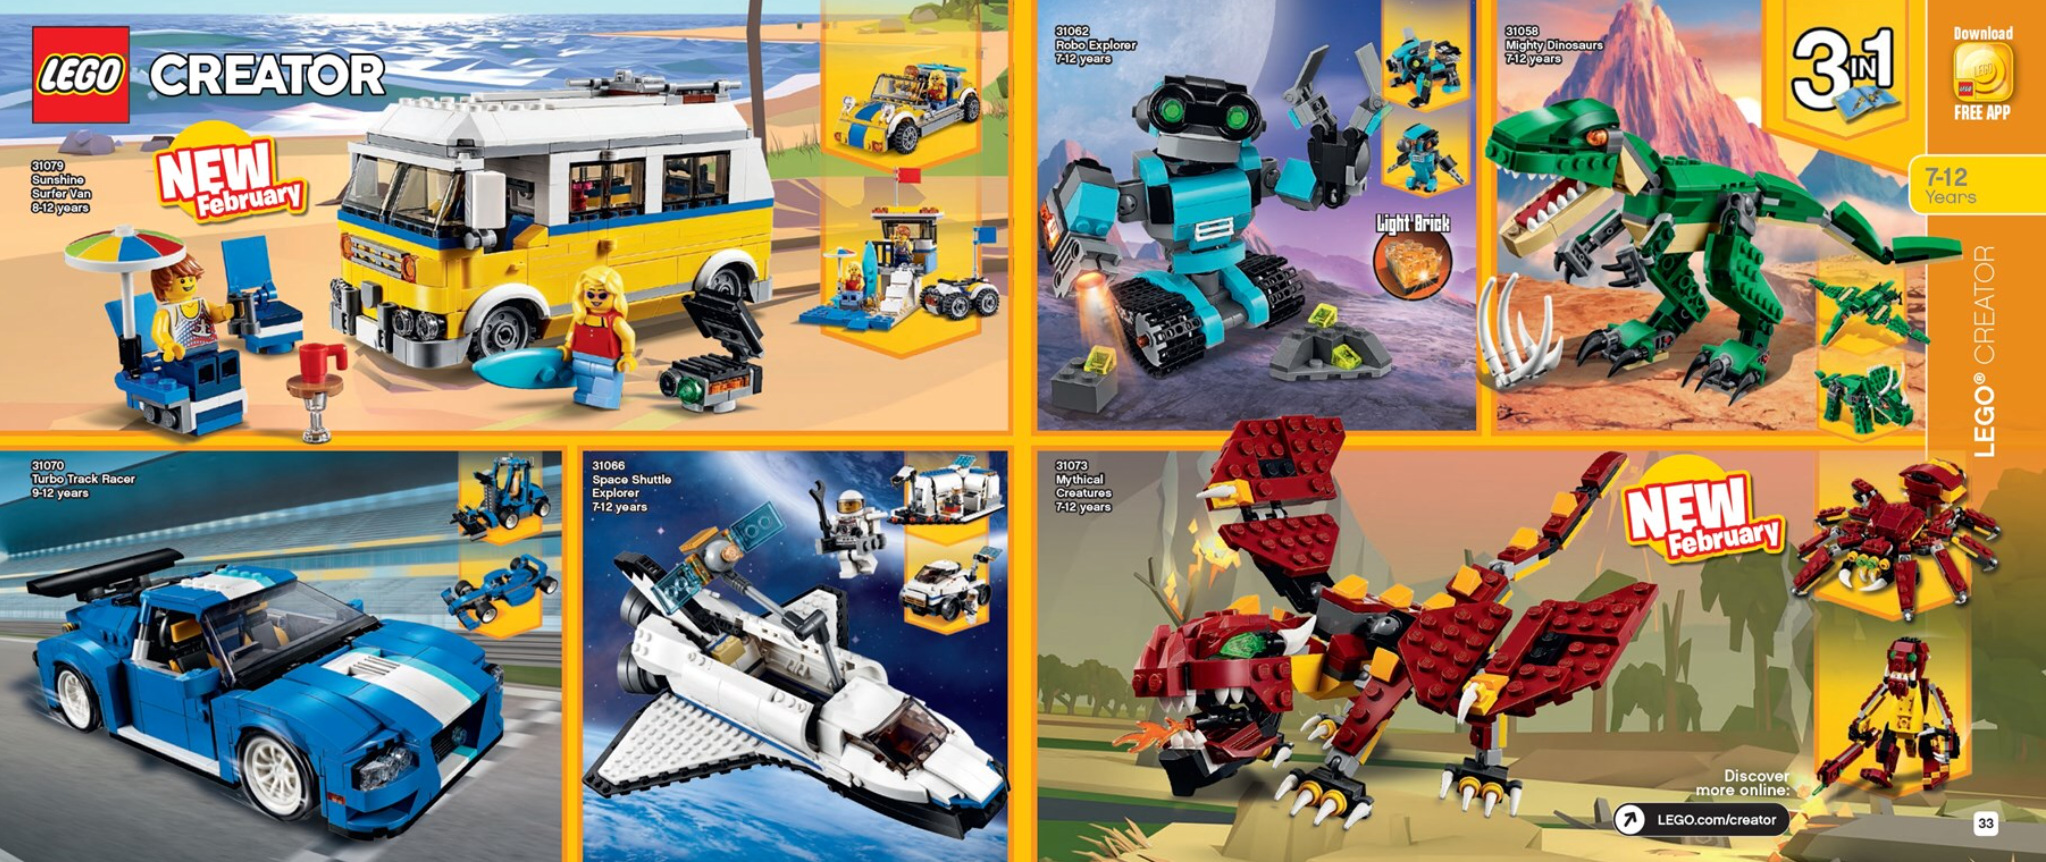 Australian LEGO Release Dates – First Half of 2018 sets (January